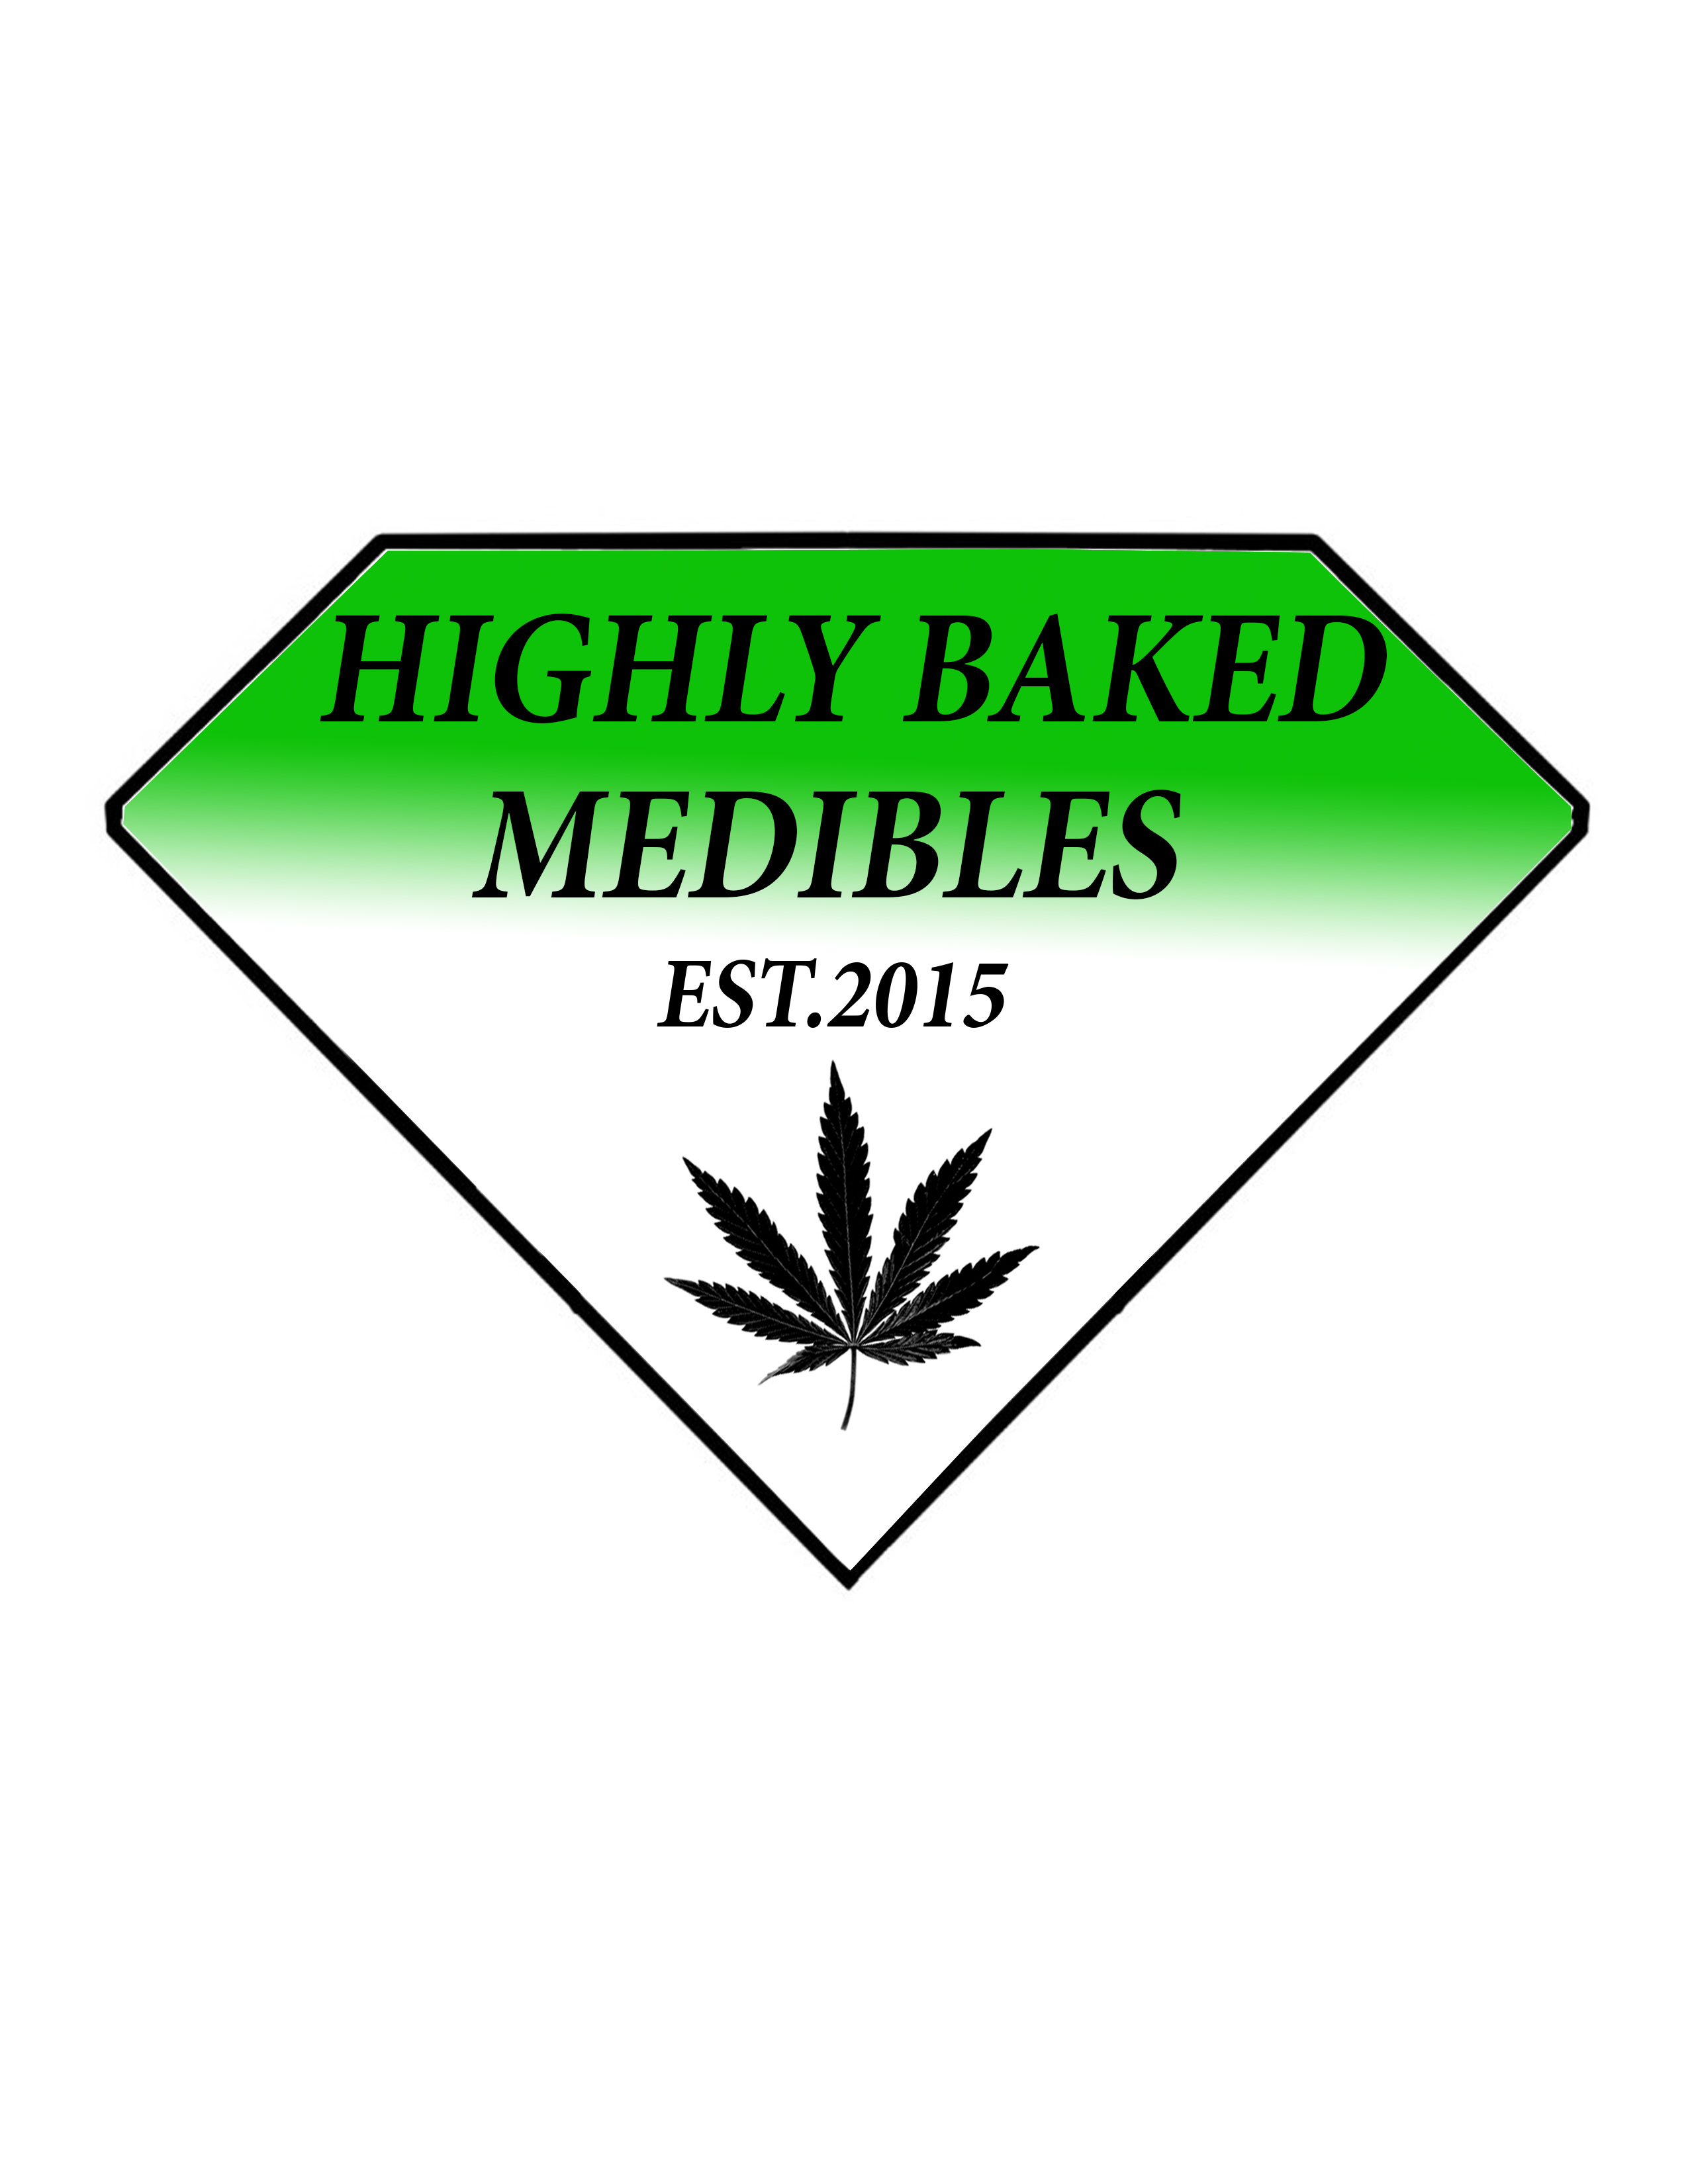 Highly Baked Medibles